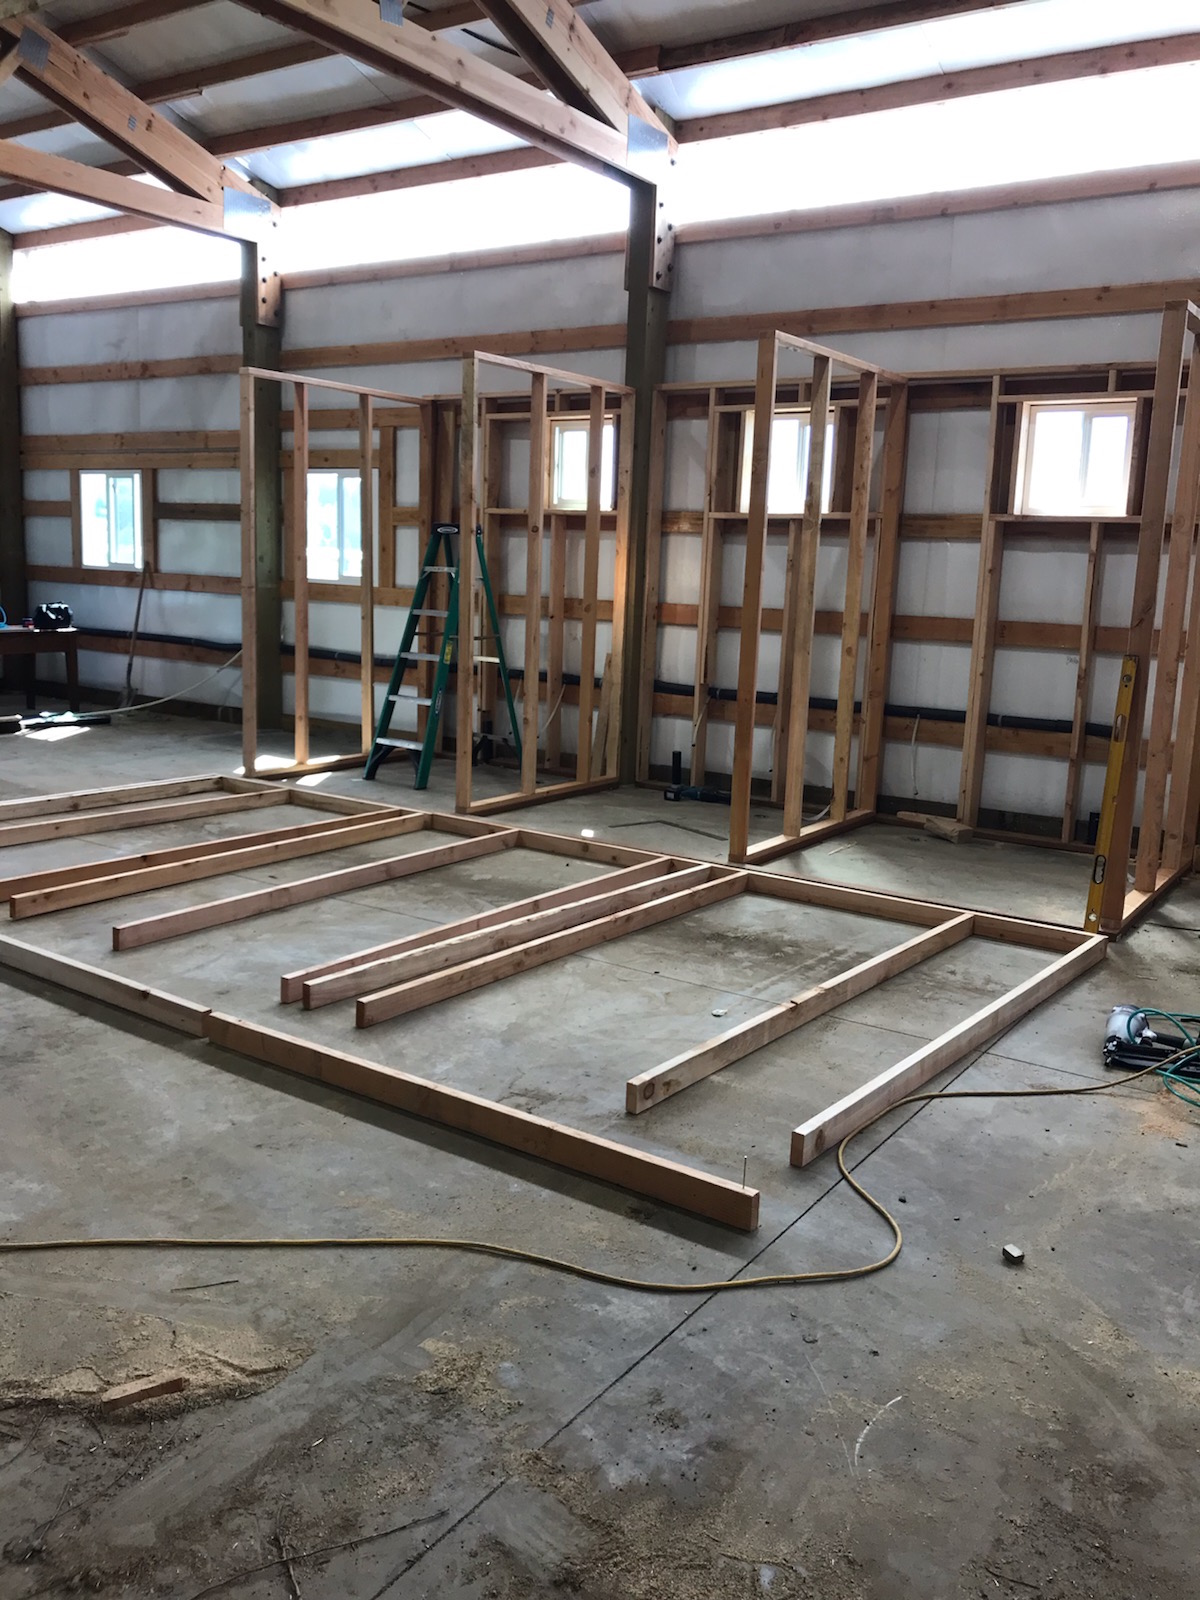 The basic framing going up for three bathrooms.